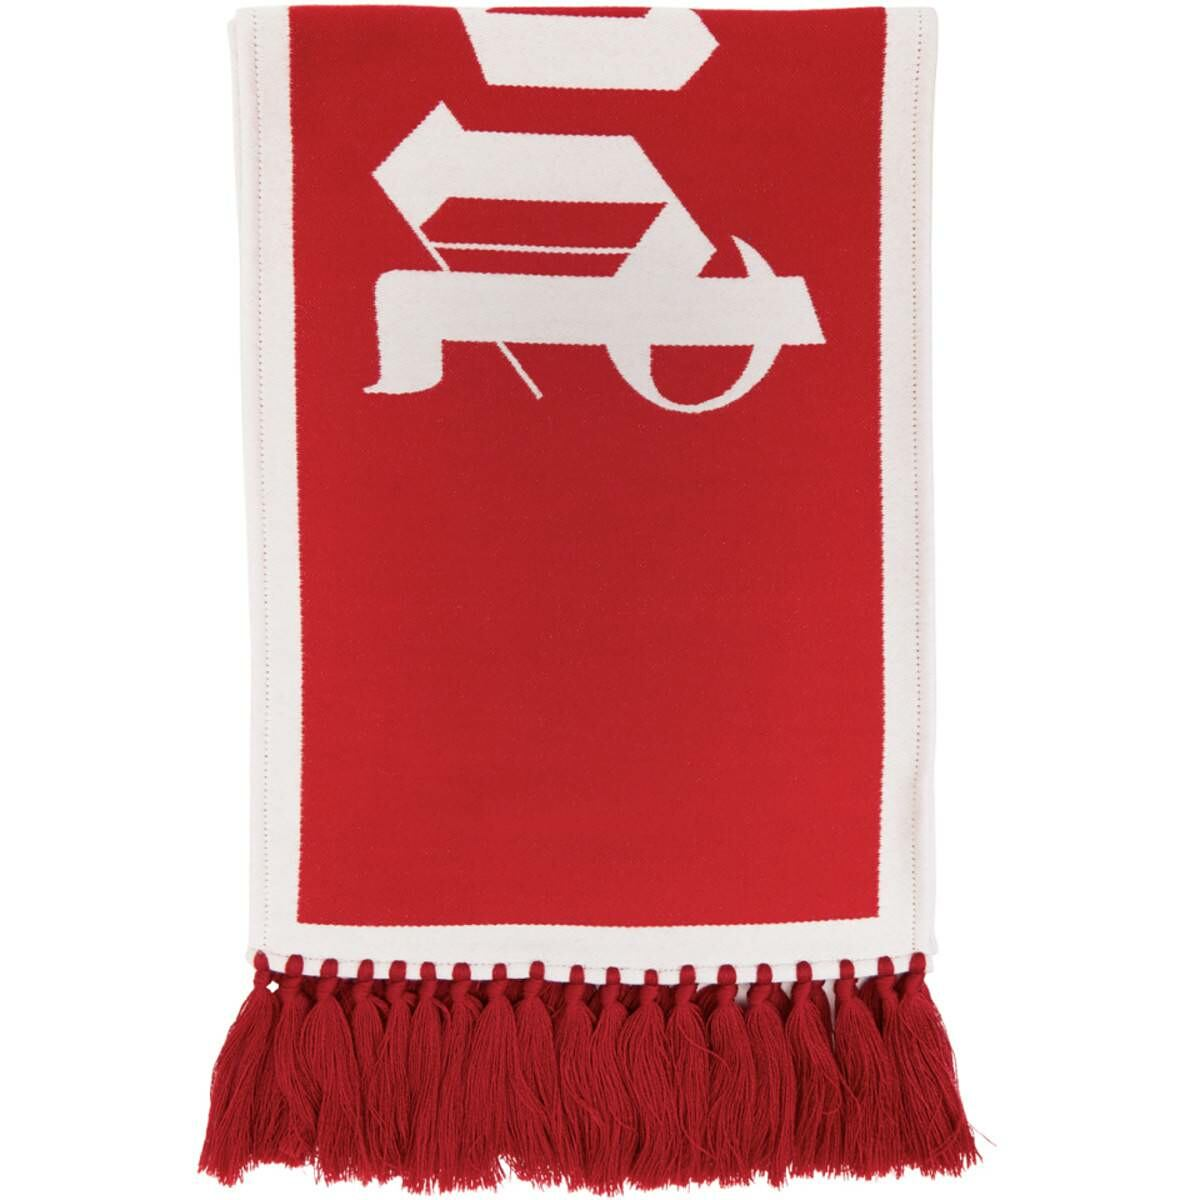 Palm Angels Red Knit Logo Scarf Ssense USA MEN Men ACCESSORIES Mens SCARFS